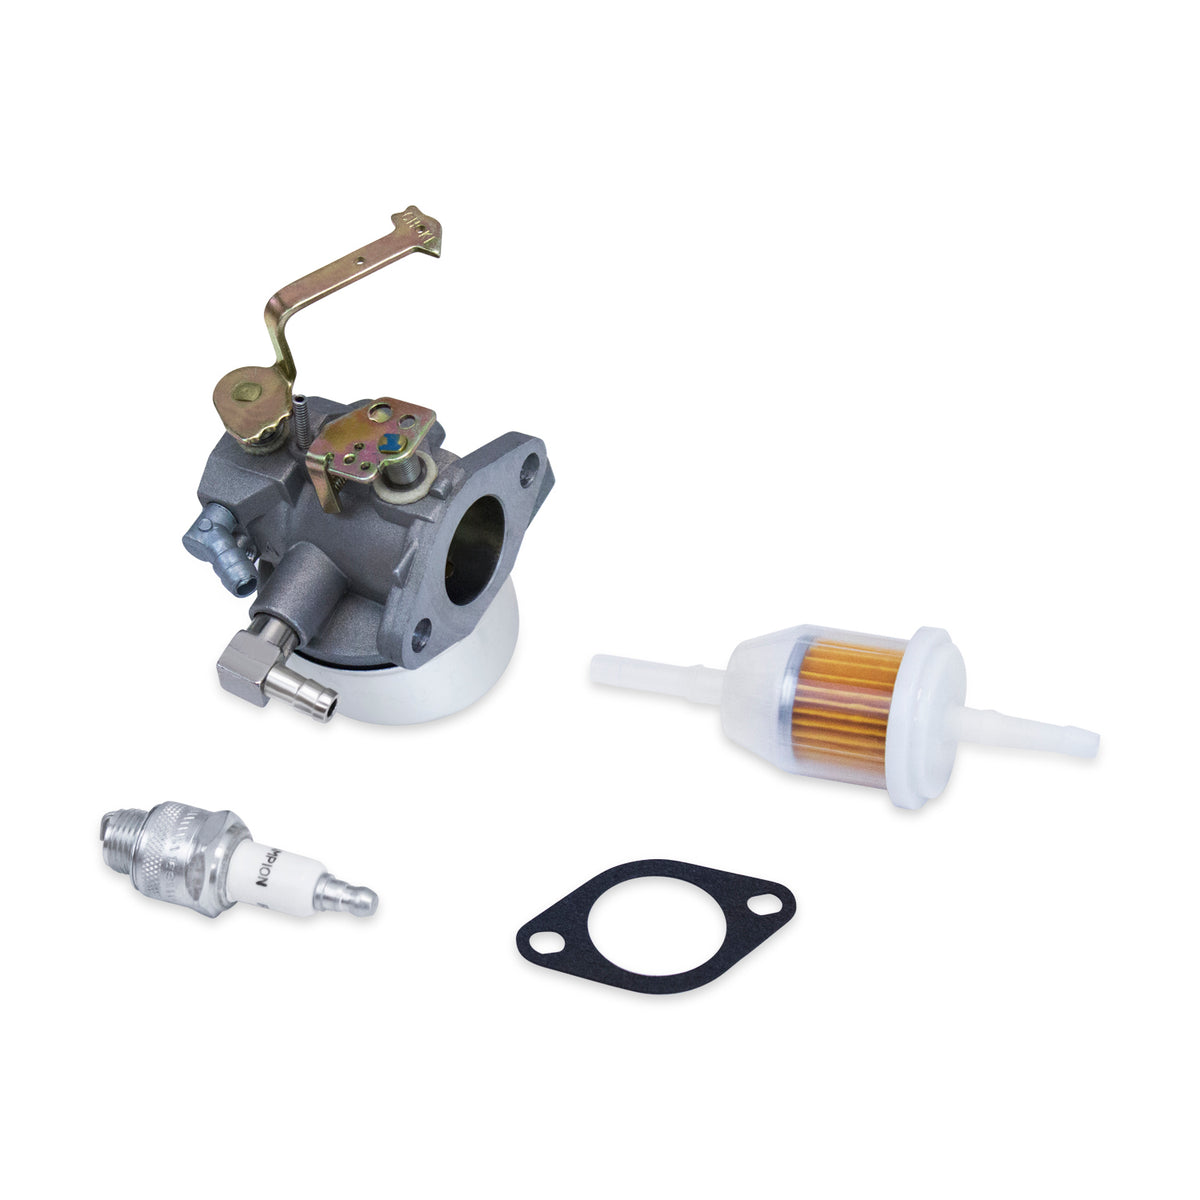 Carburetor Spark Plug Fuel Filter Fits Some Tecumseh Lh358ea 340260b 632689 Sunl Atv 6 Usa Everest Parts Supplies